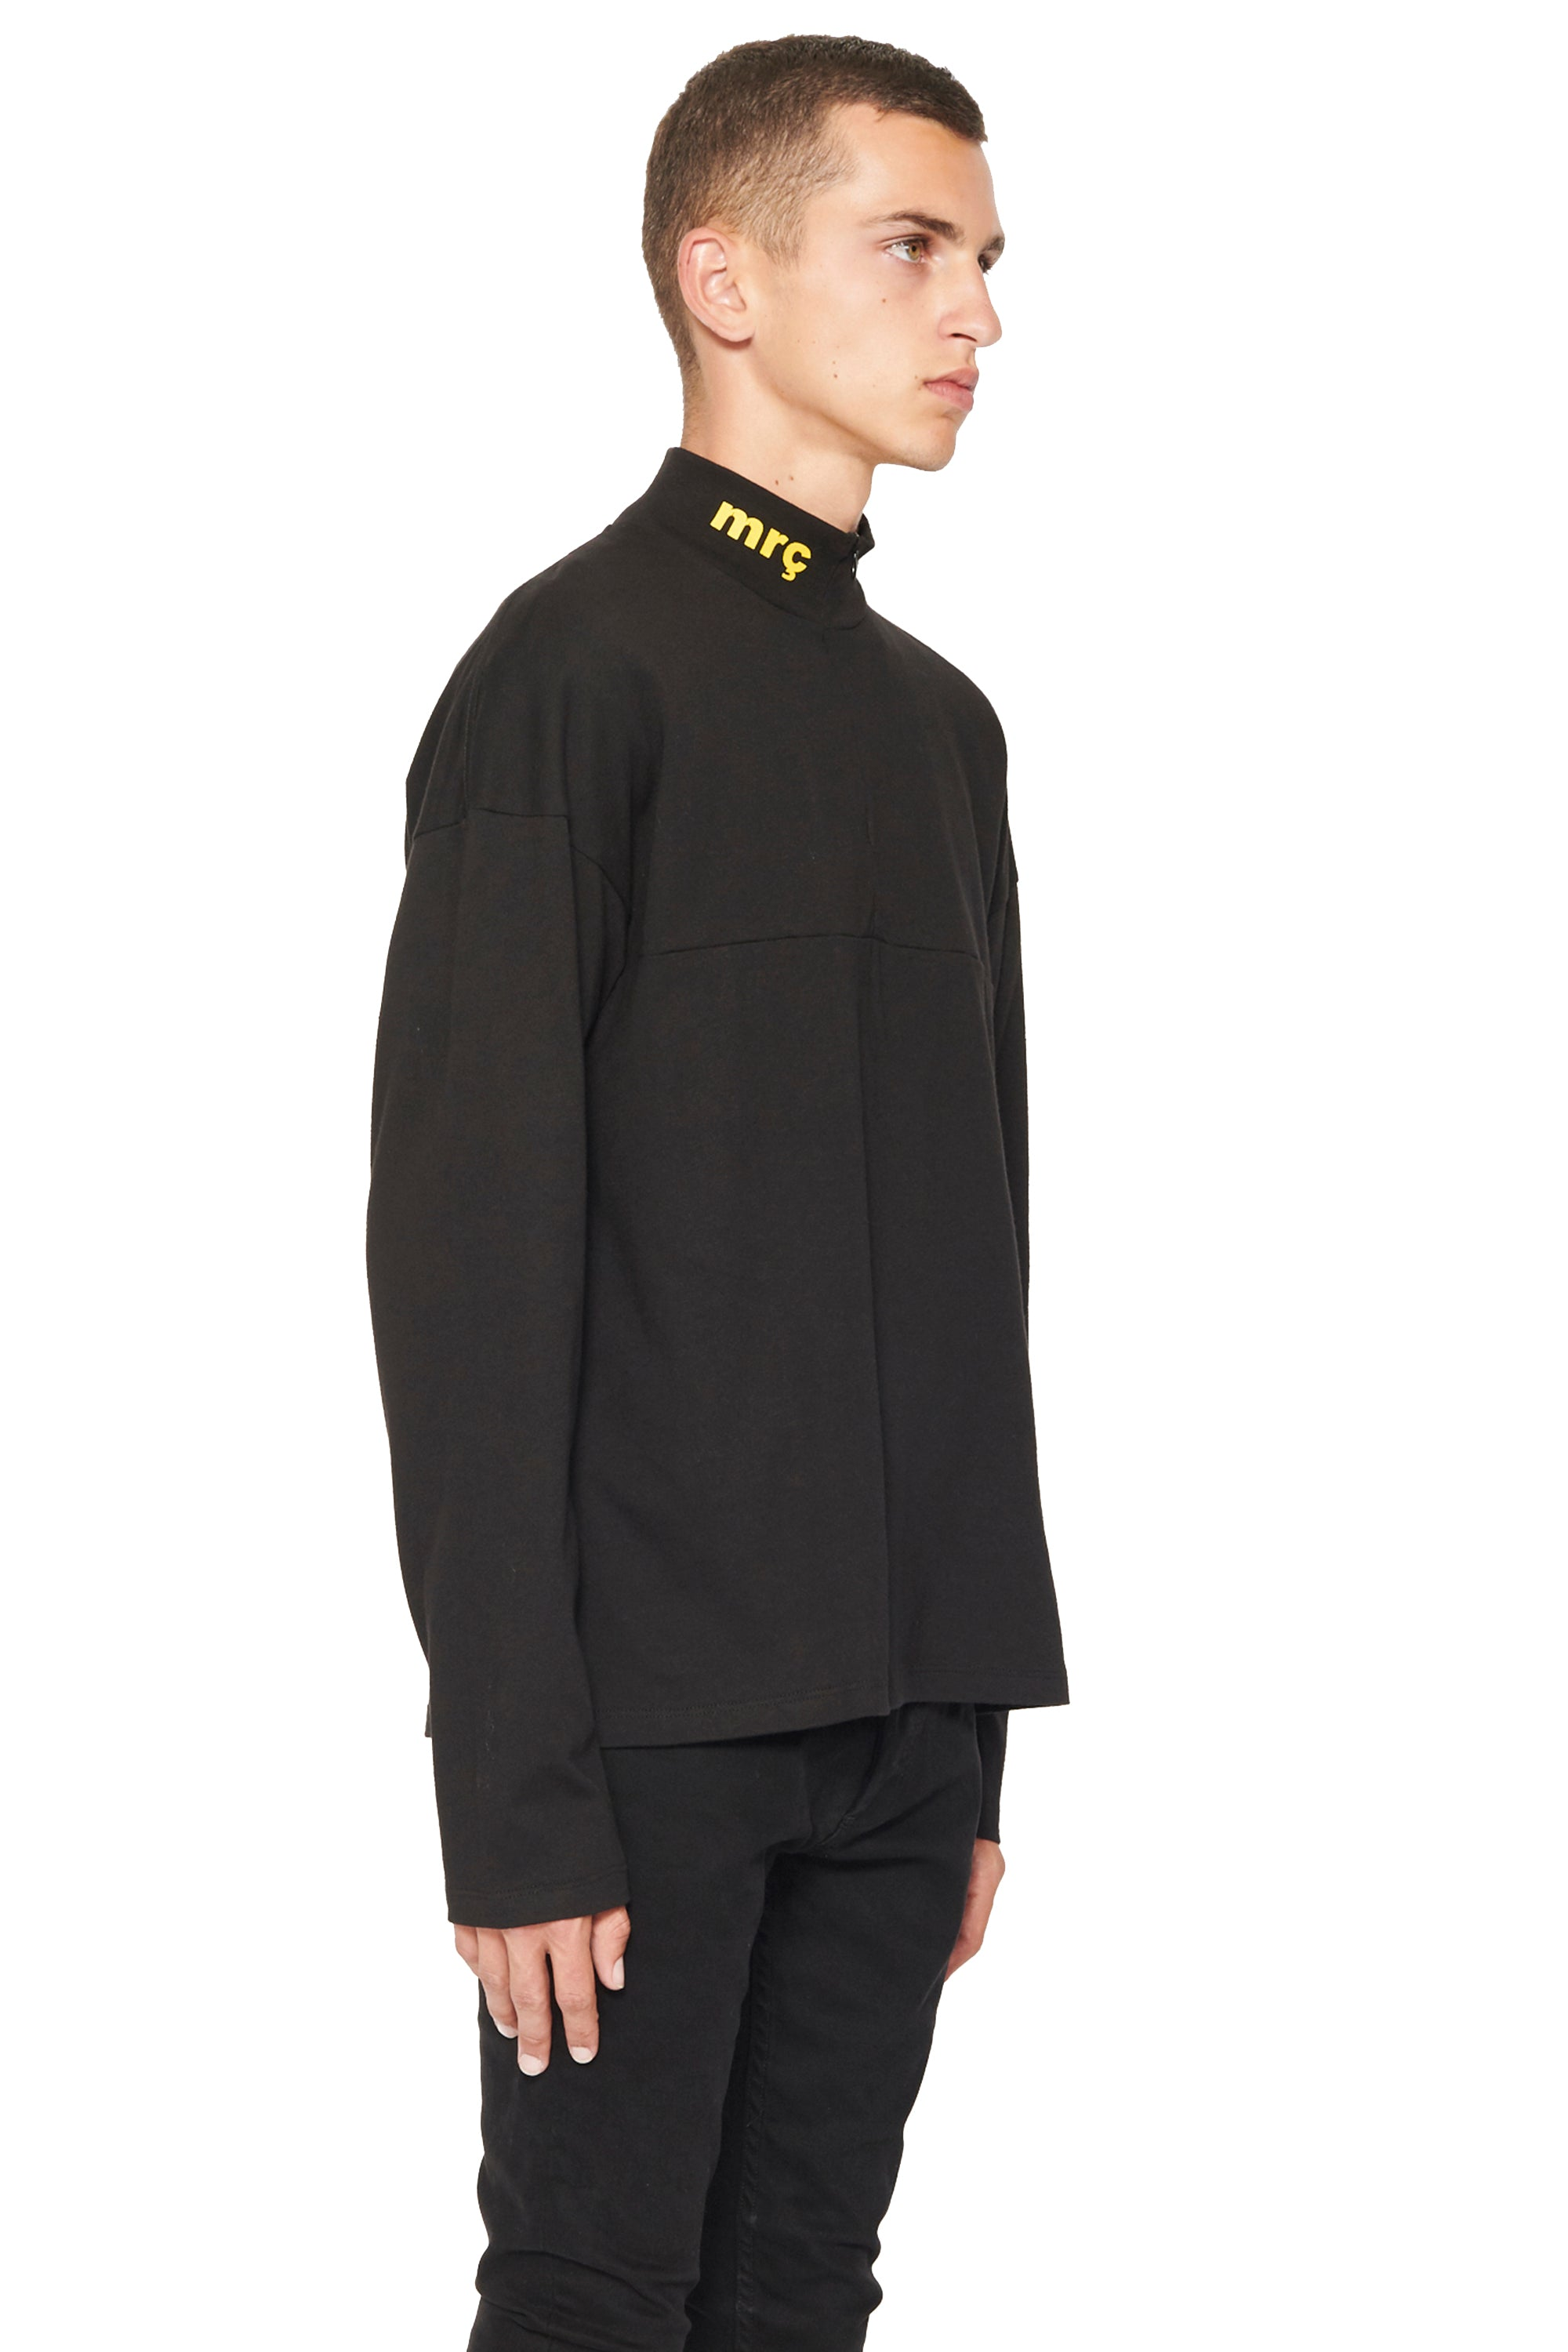 MOCK NECK LONG SLEEVE  T SHIRT - YELLOW